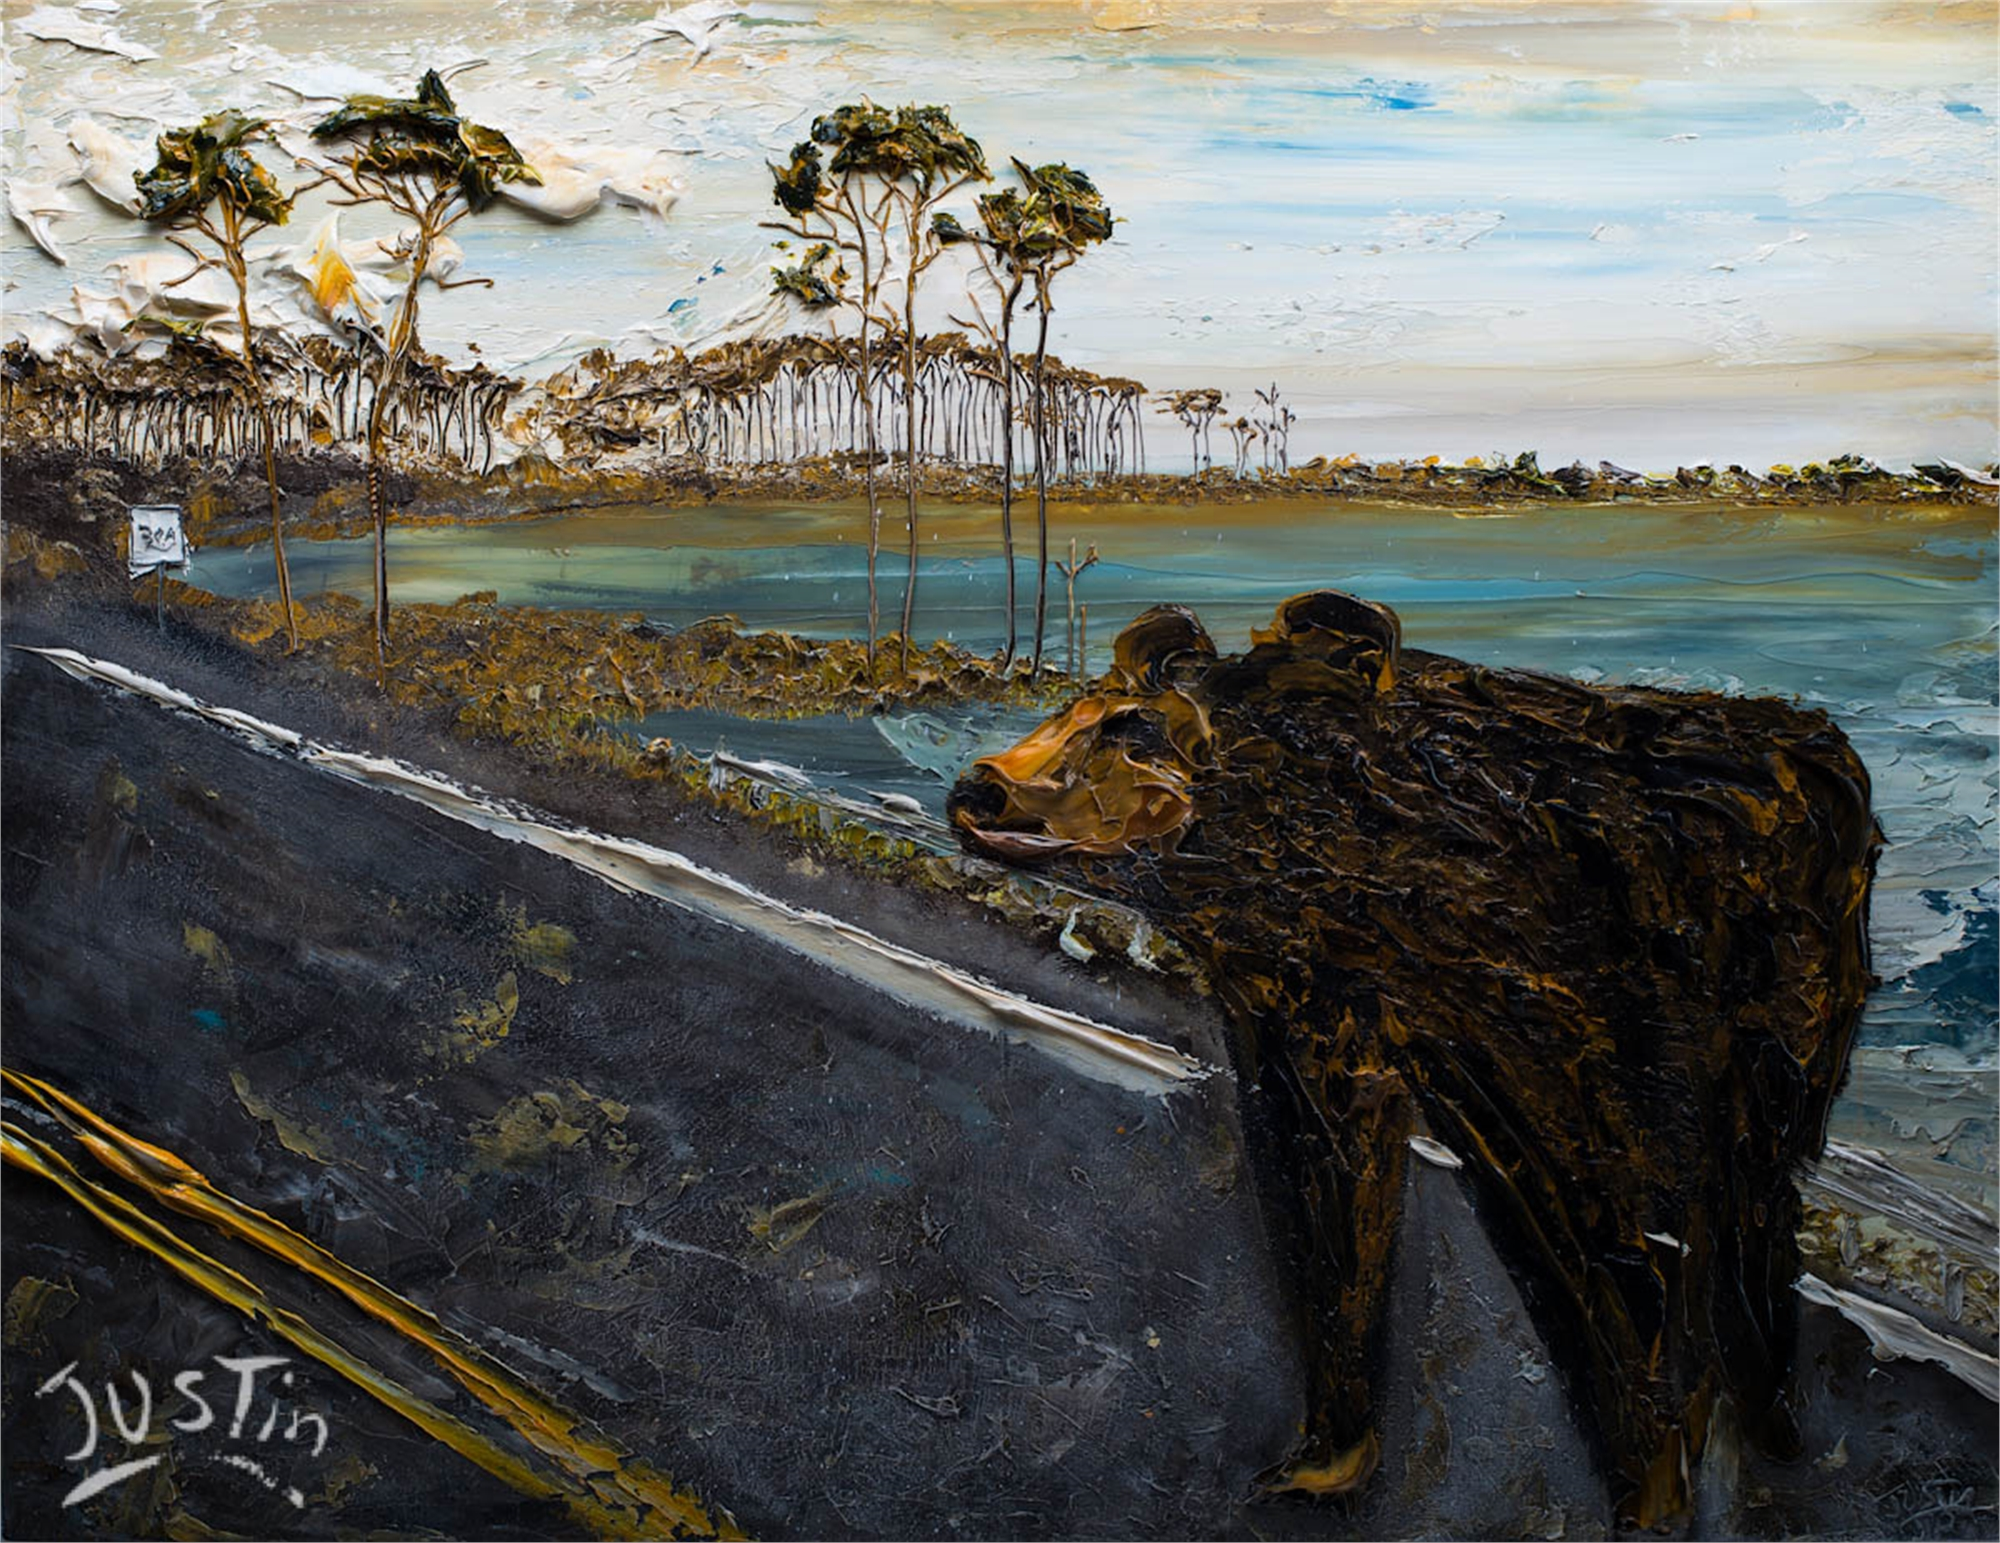 30A BEAR by JUSTIN GAFFREY